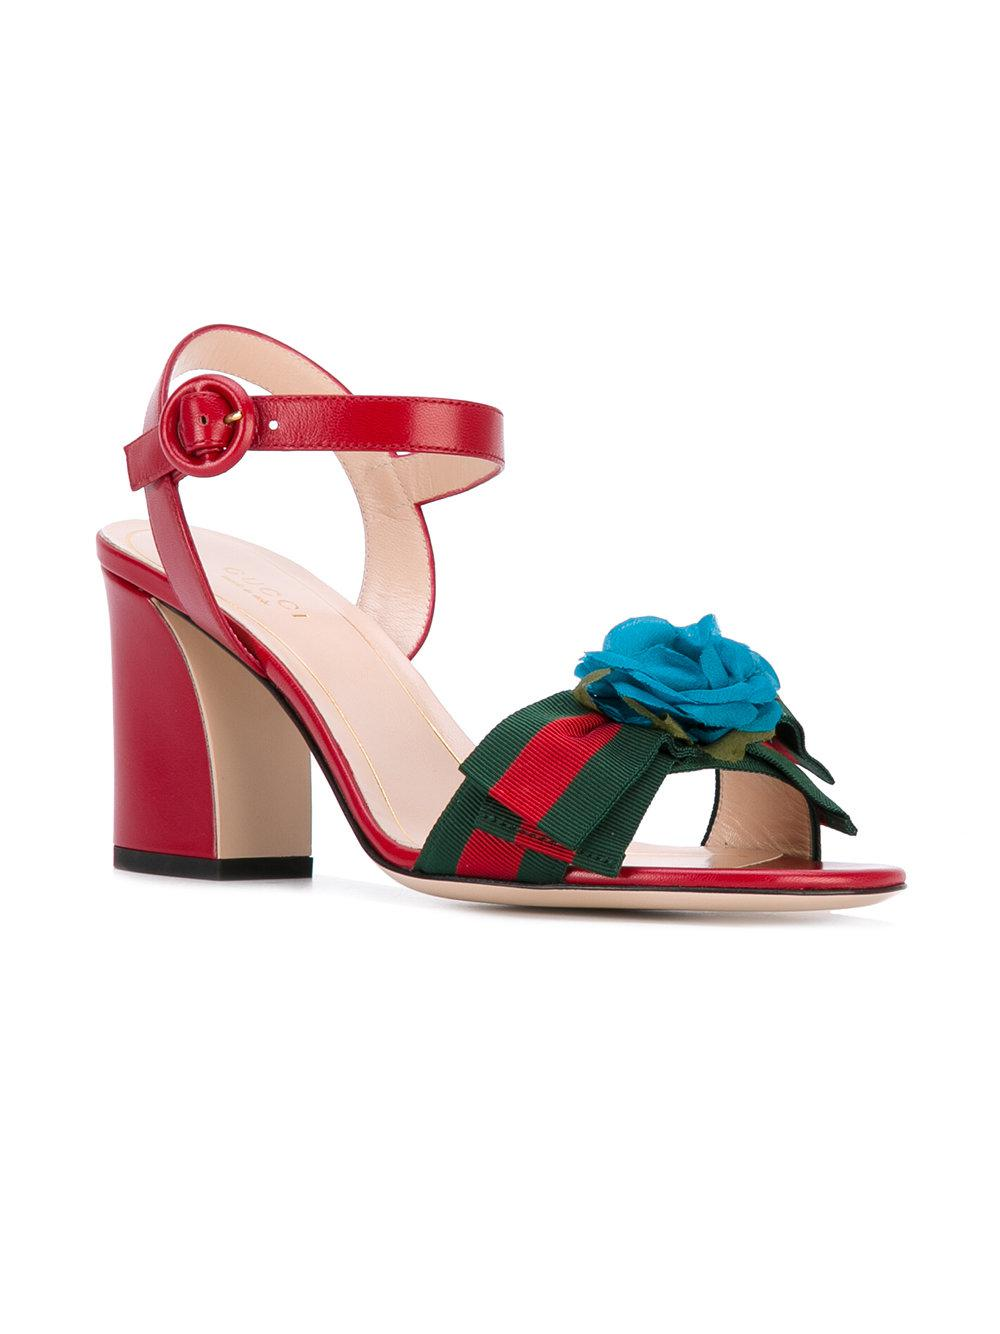 503a322de8fa Lyst - Gucci Floral-embellished Sandals in Red